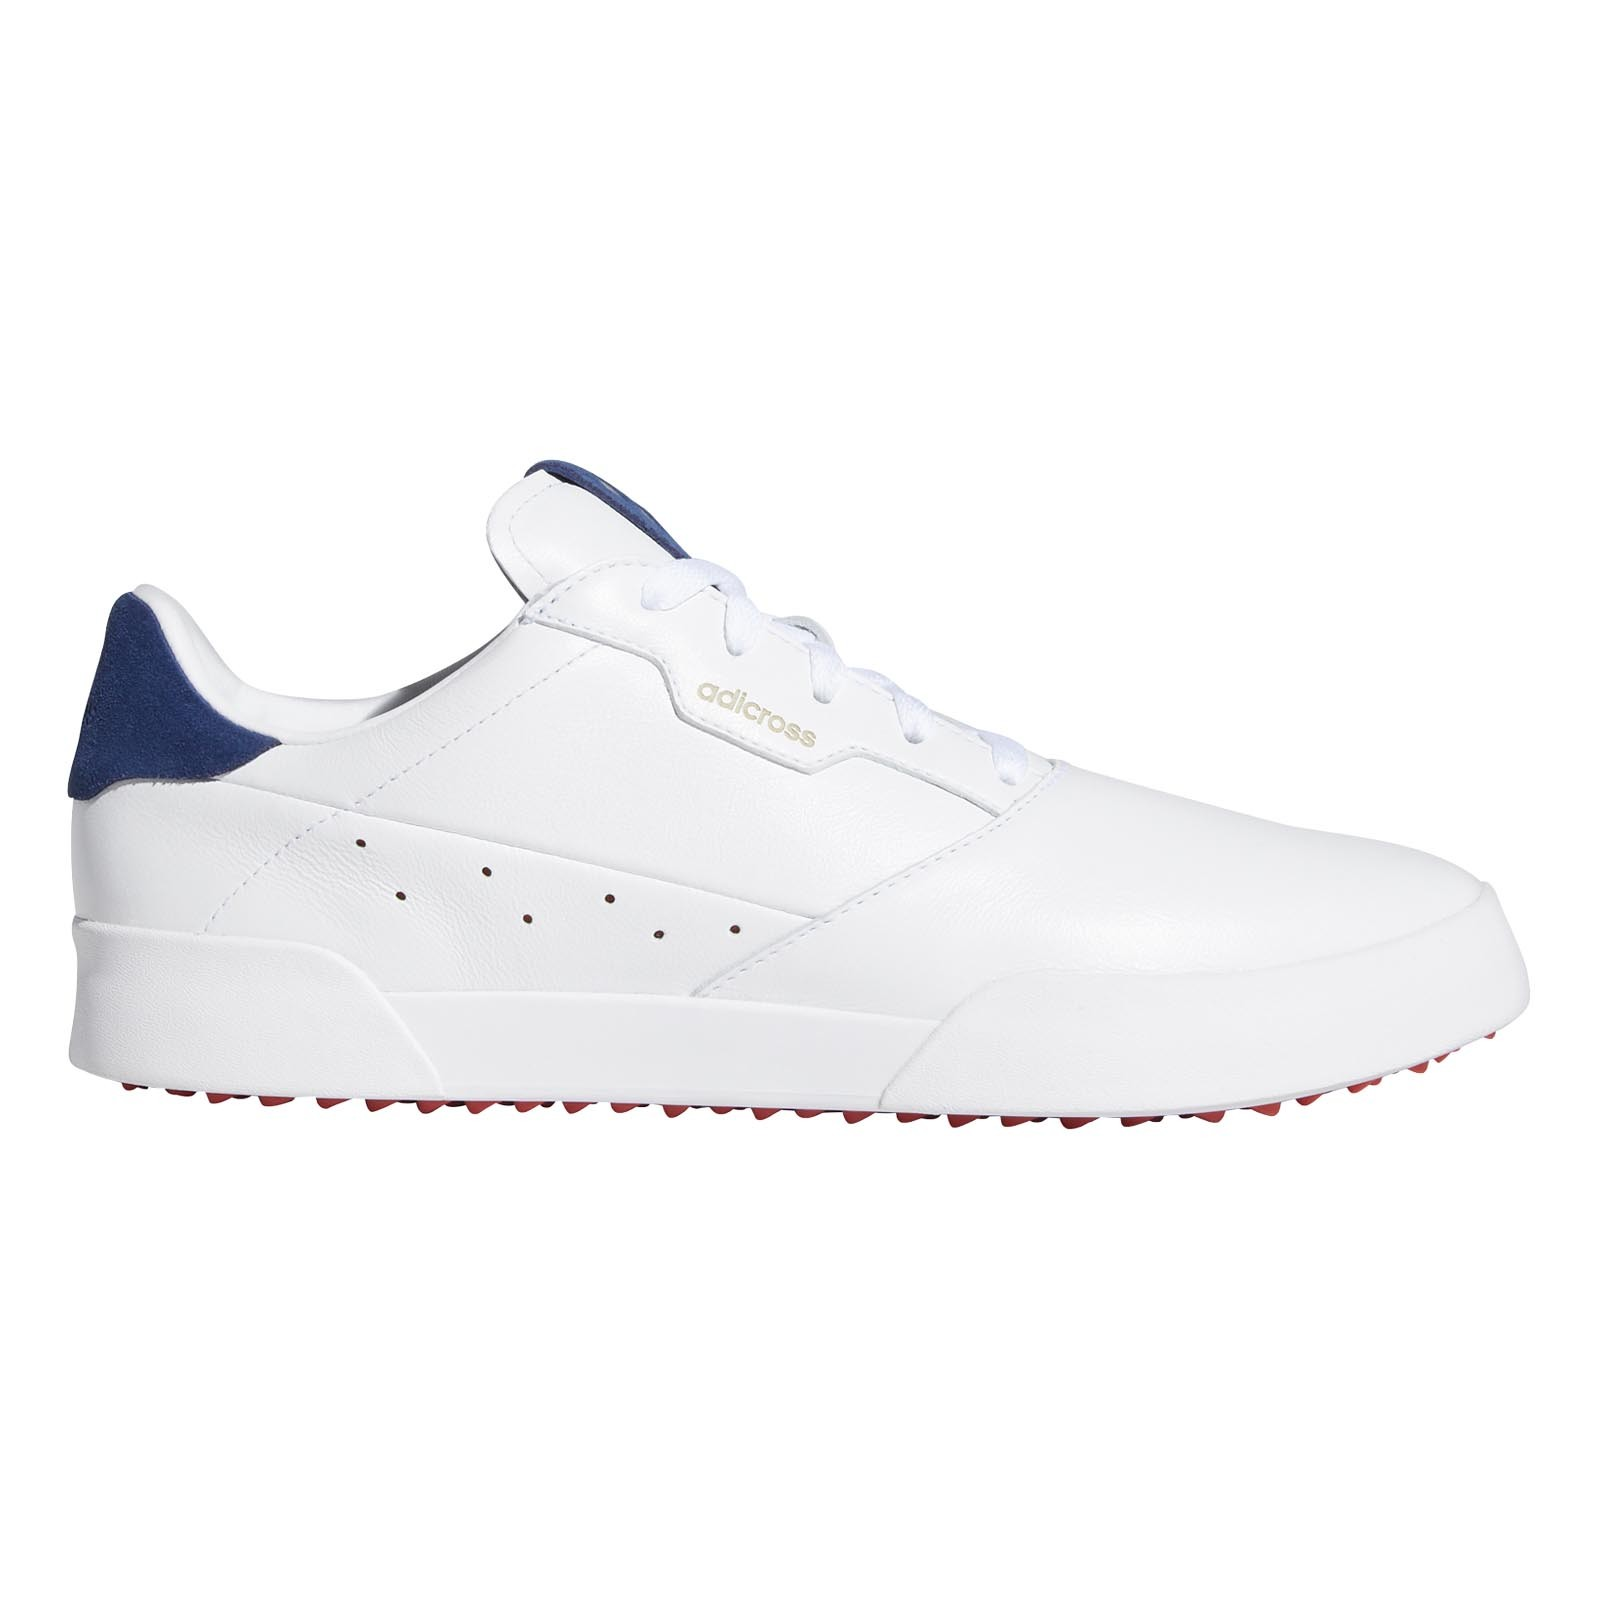 adidas Adicross Retro Spikeless Golf Shoes